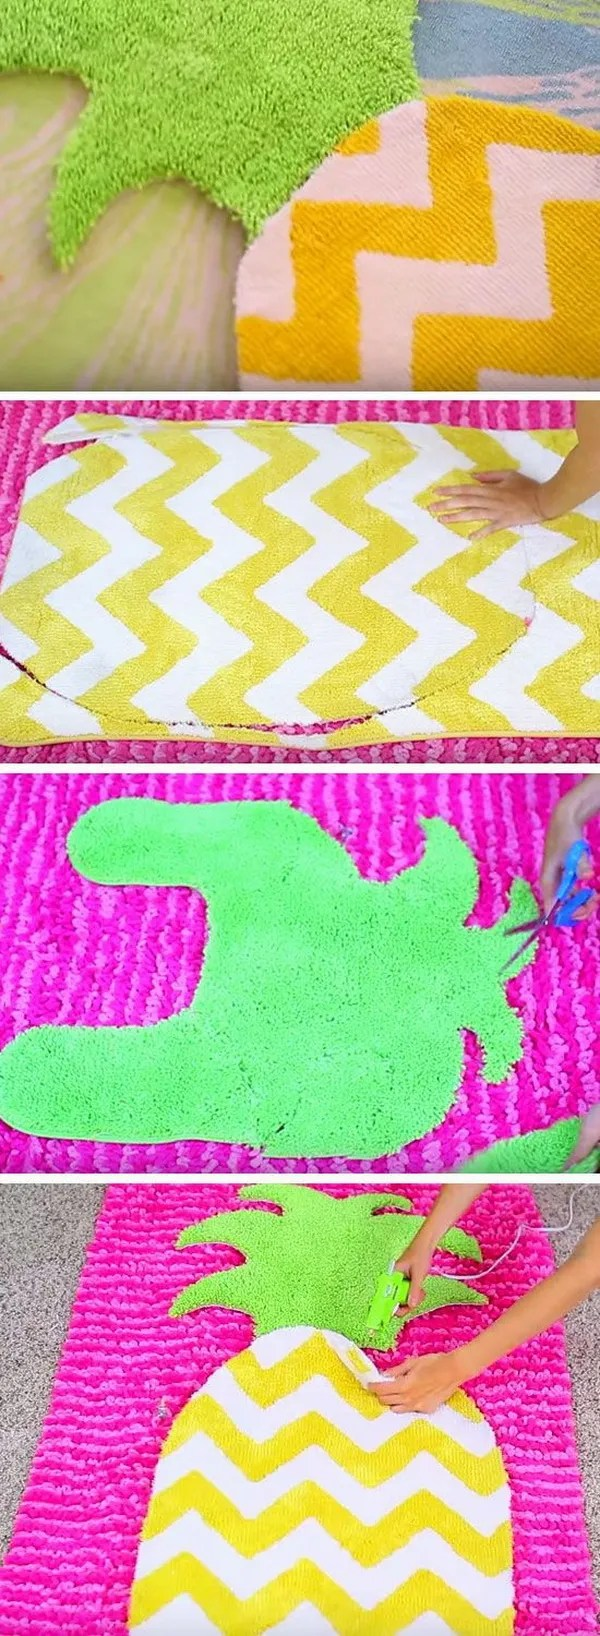 Easy diy projects for teenage girls rooms - Diy Fruit Rug Lovely And Cute For Any Room For Girls And Also Easy And